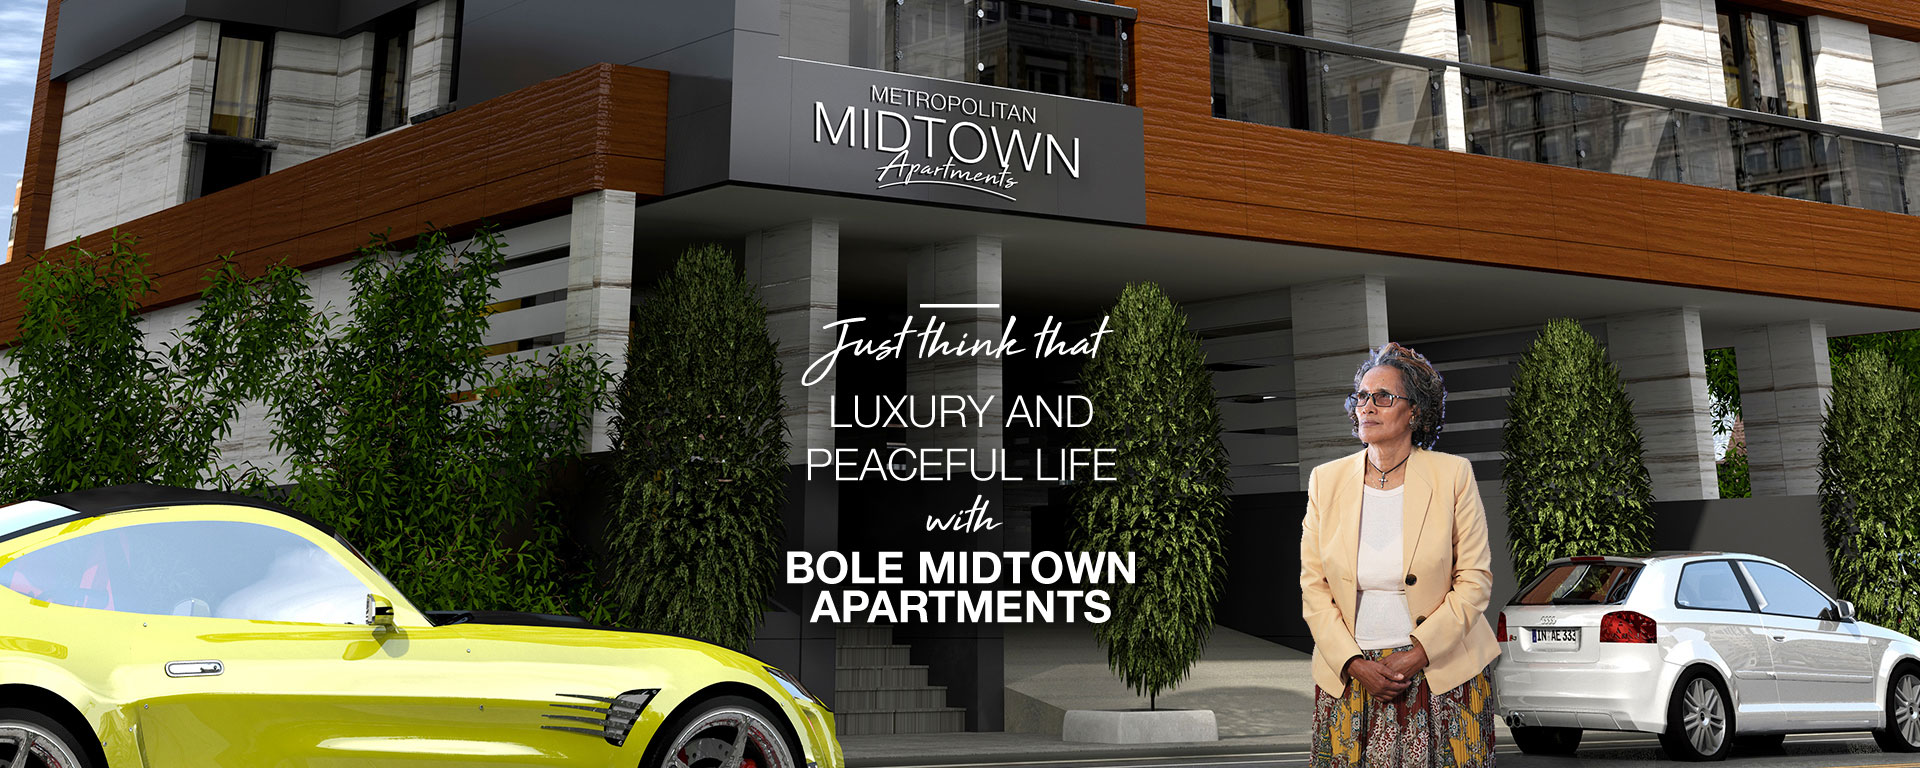 luxury and peaceful life with bole midtown apartments